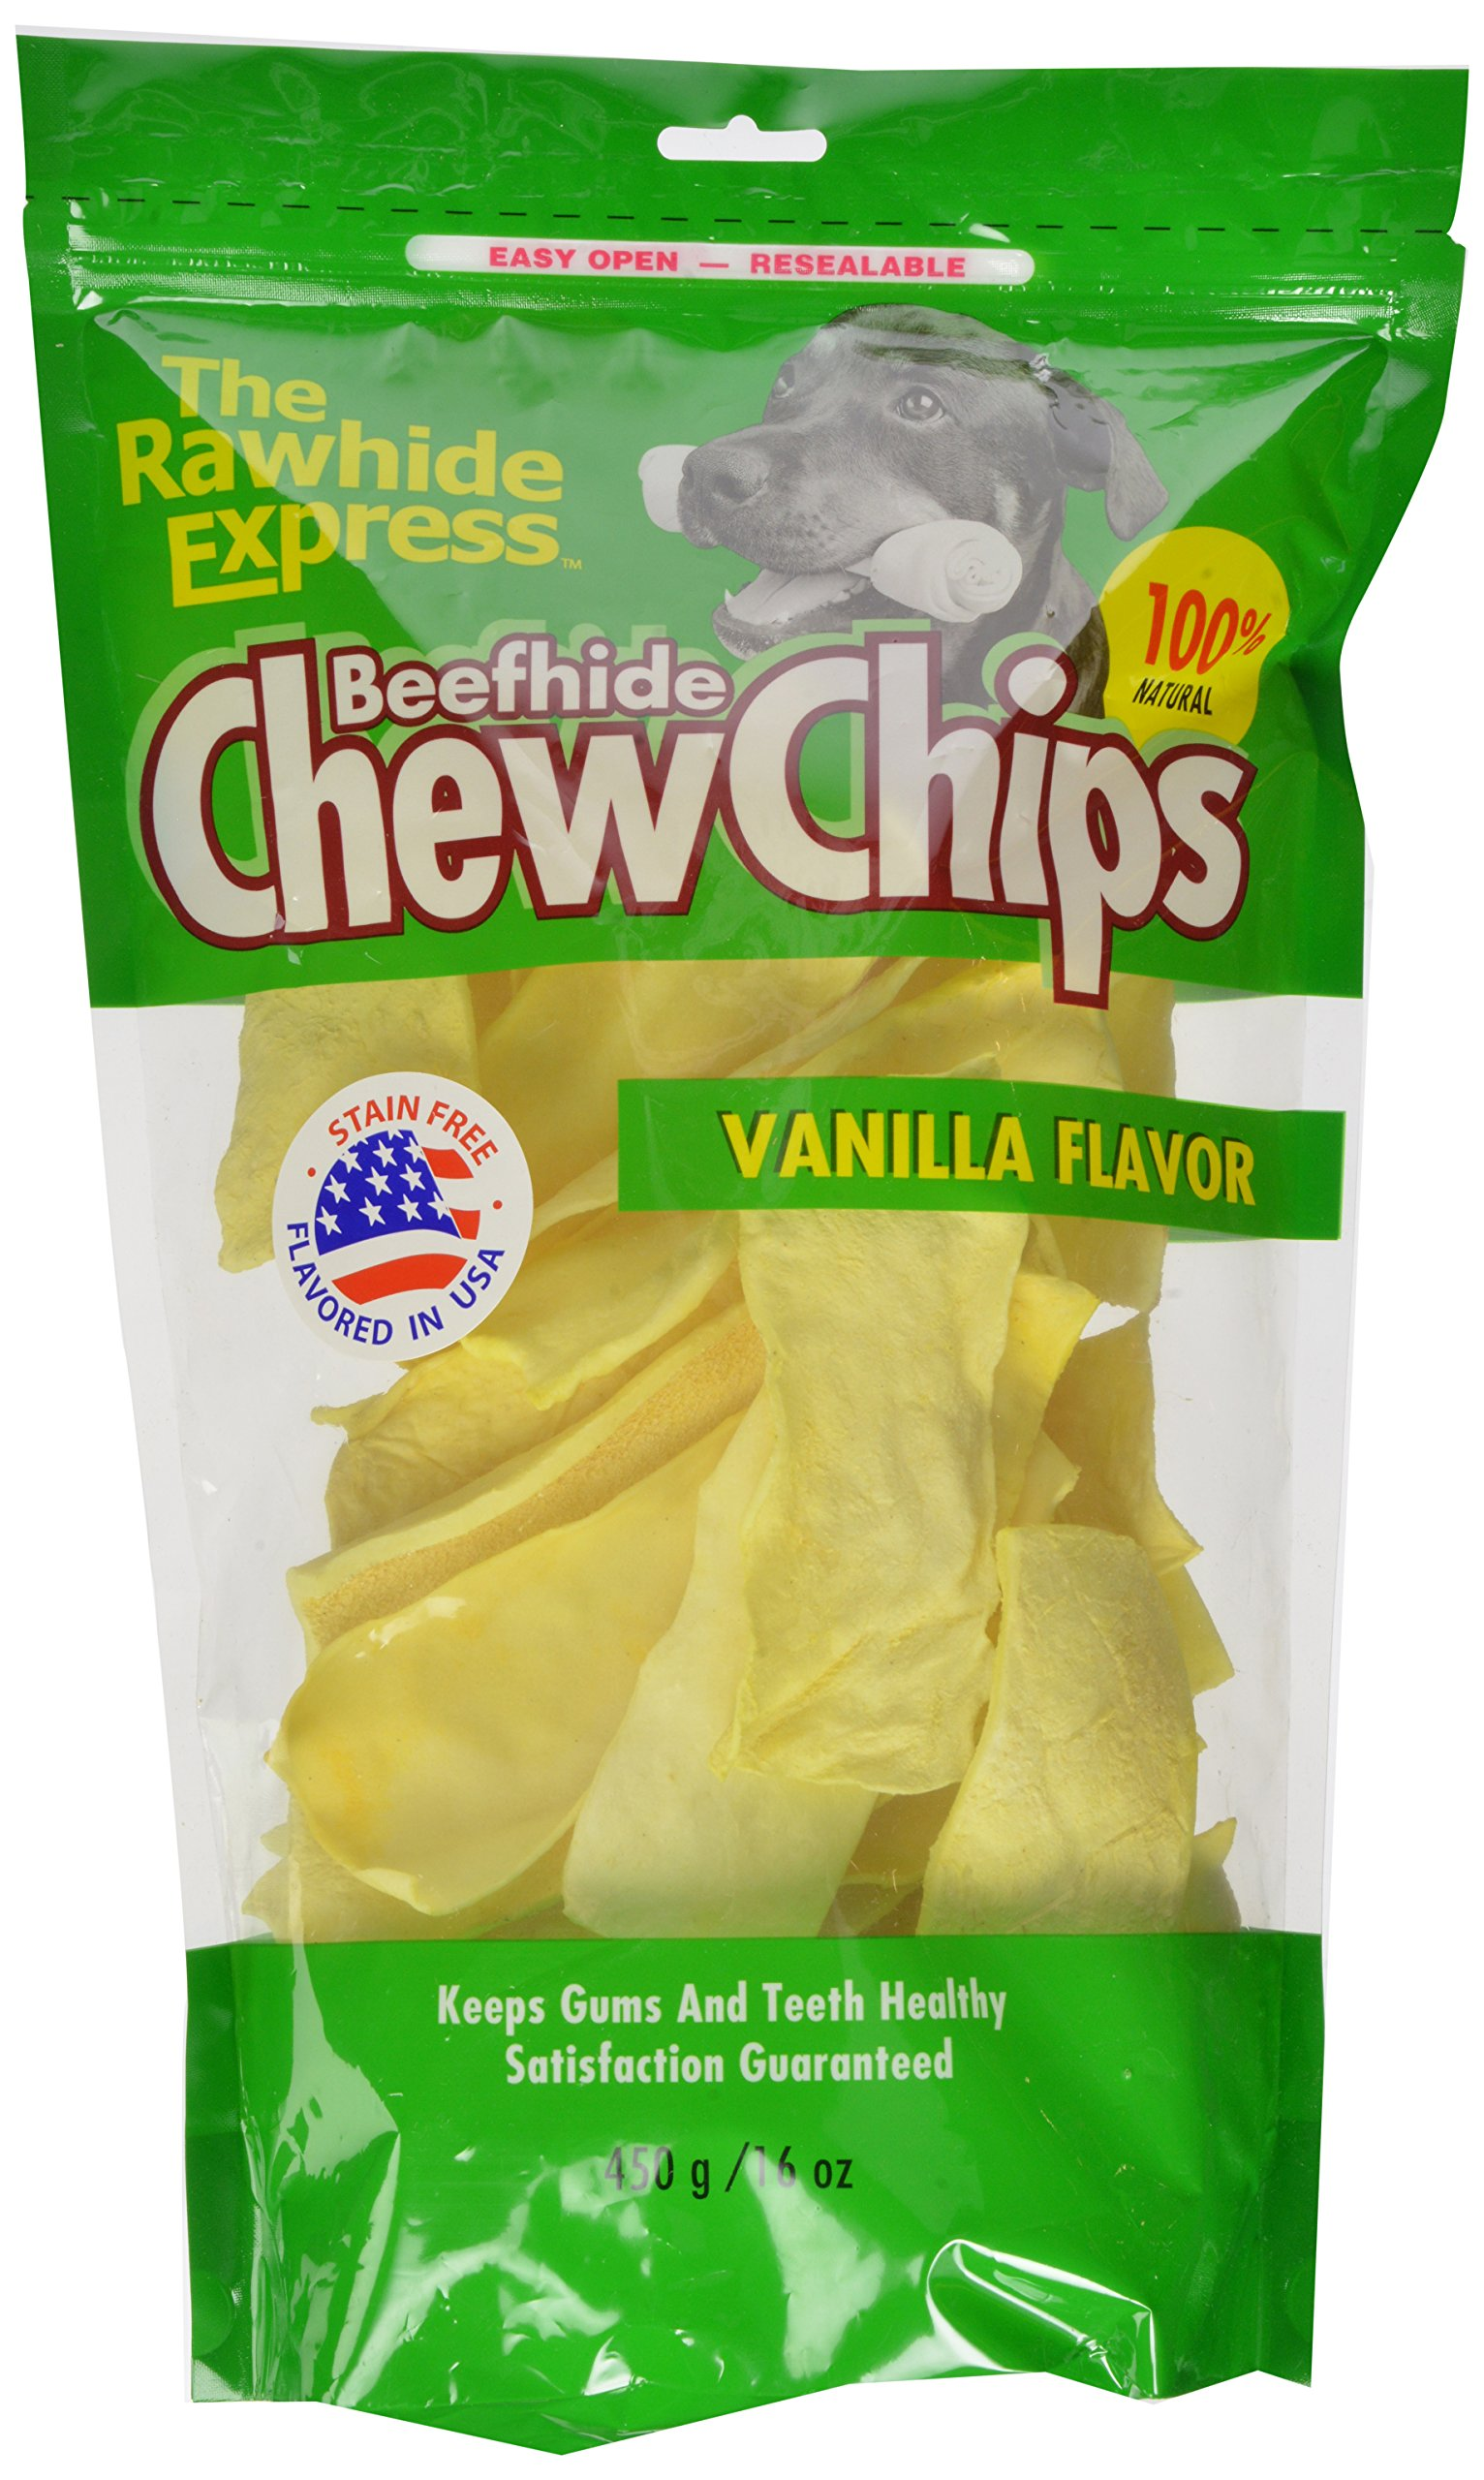 The Rawhide Express Beefhide Chew Chips Vanilla Flavored 1 Pound Bag (Great Reward or Treat)